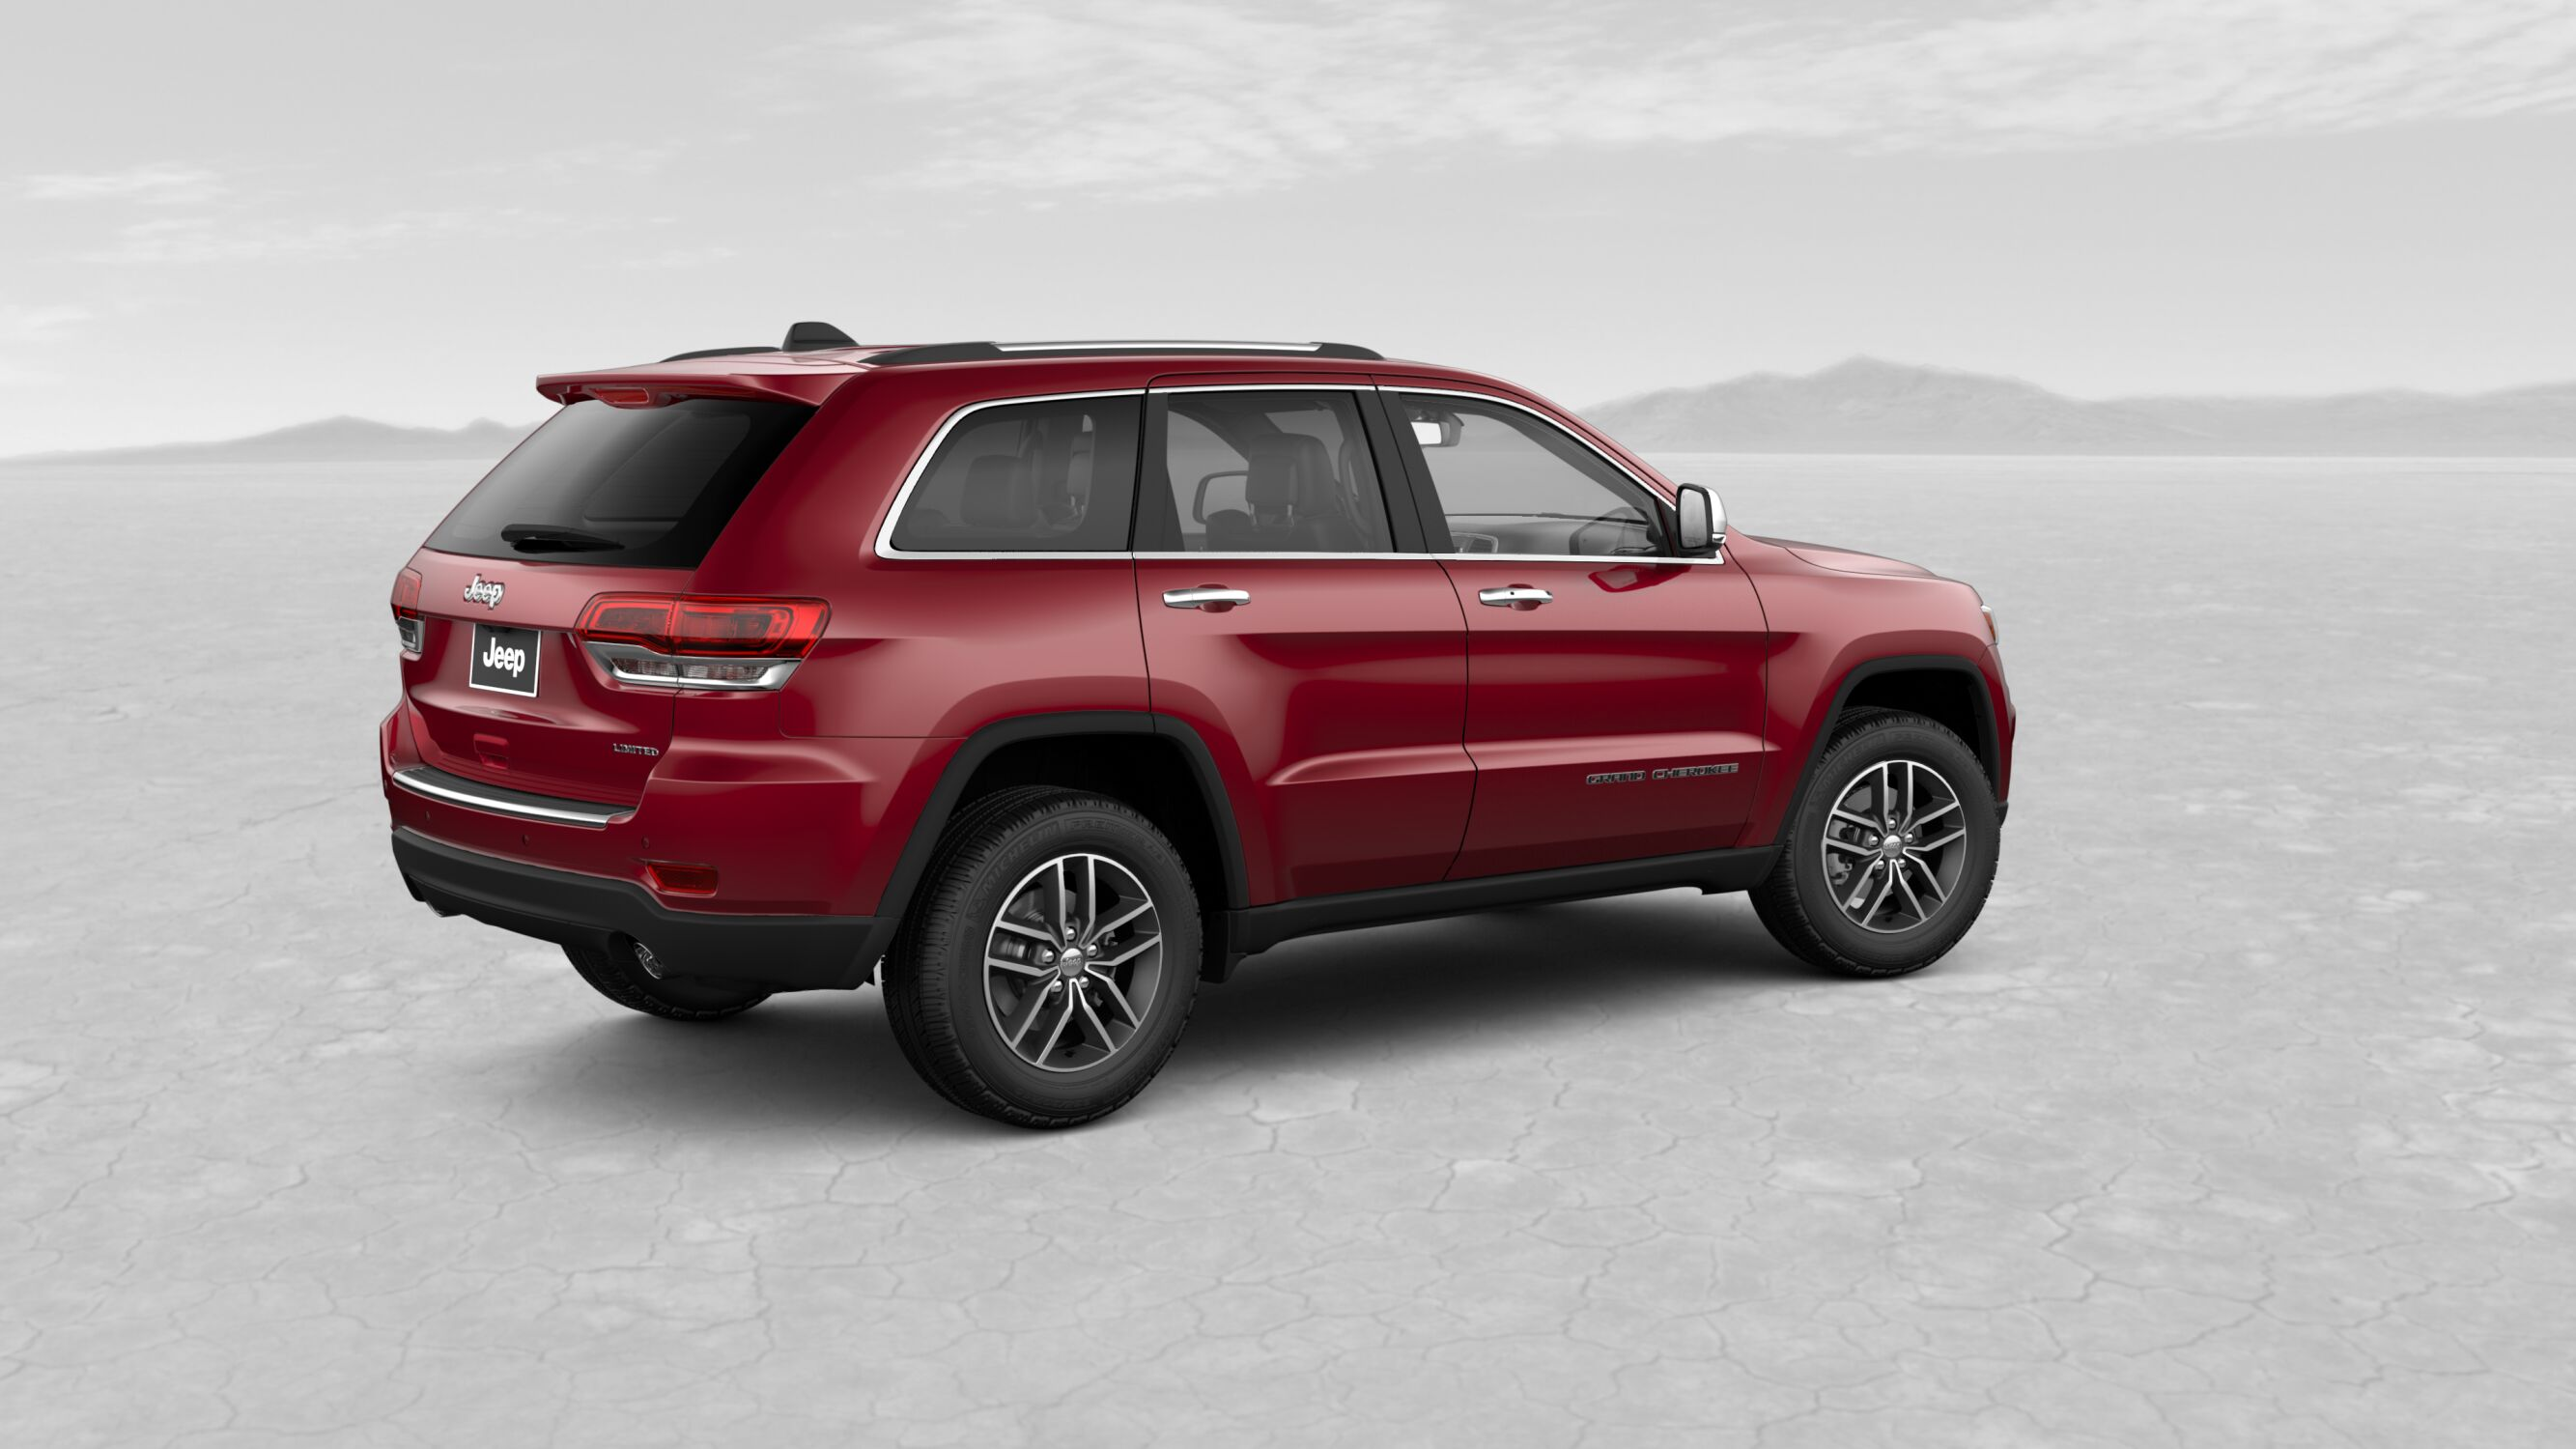 2018 Jeep Grand Chreokee Limited Velvet Red Pearl Exterior Side View